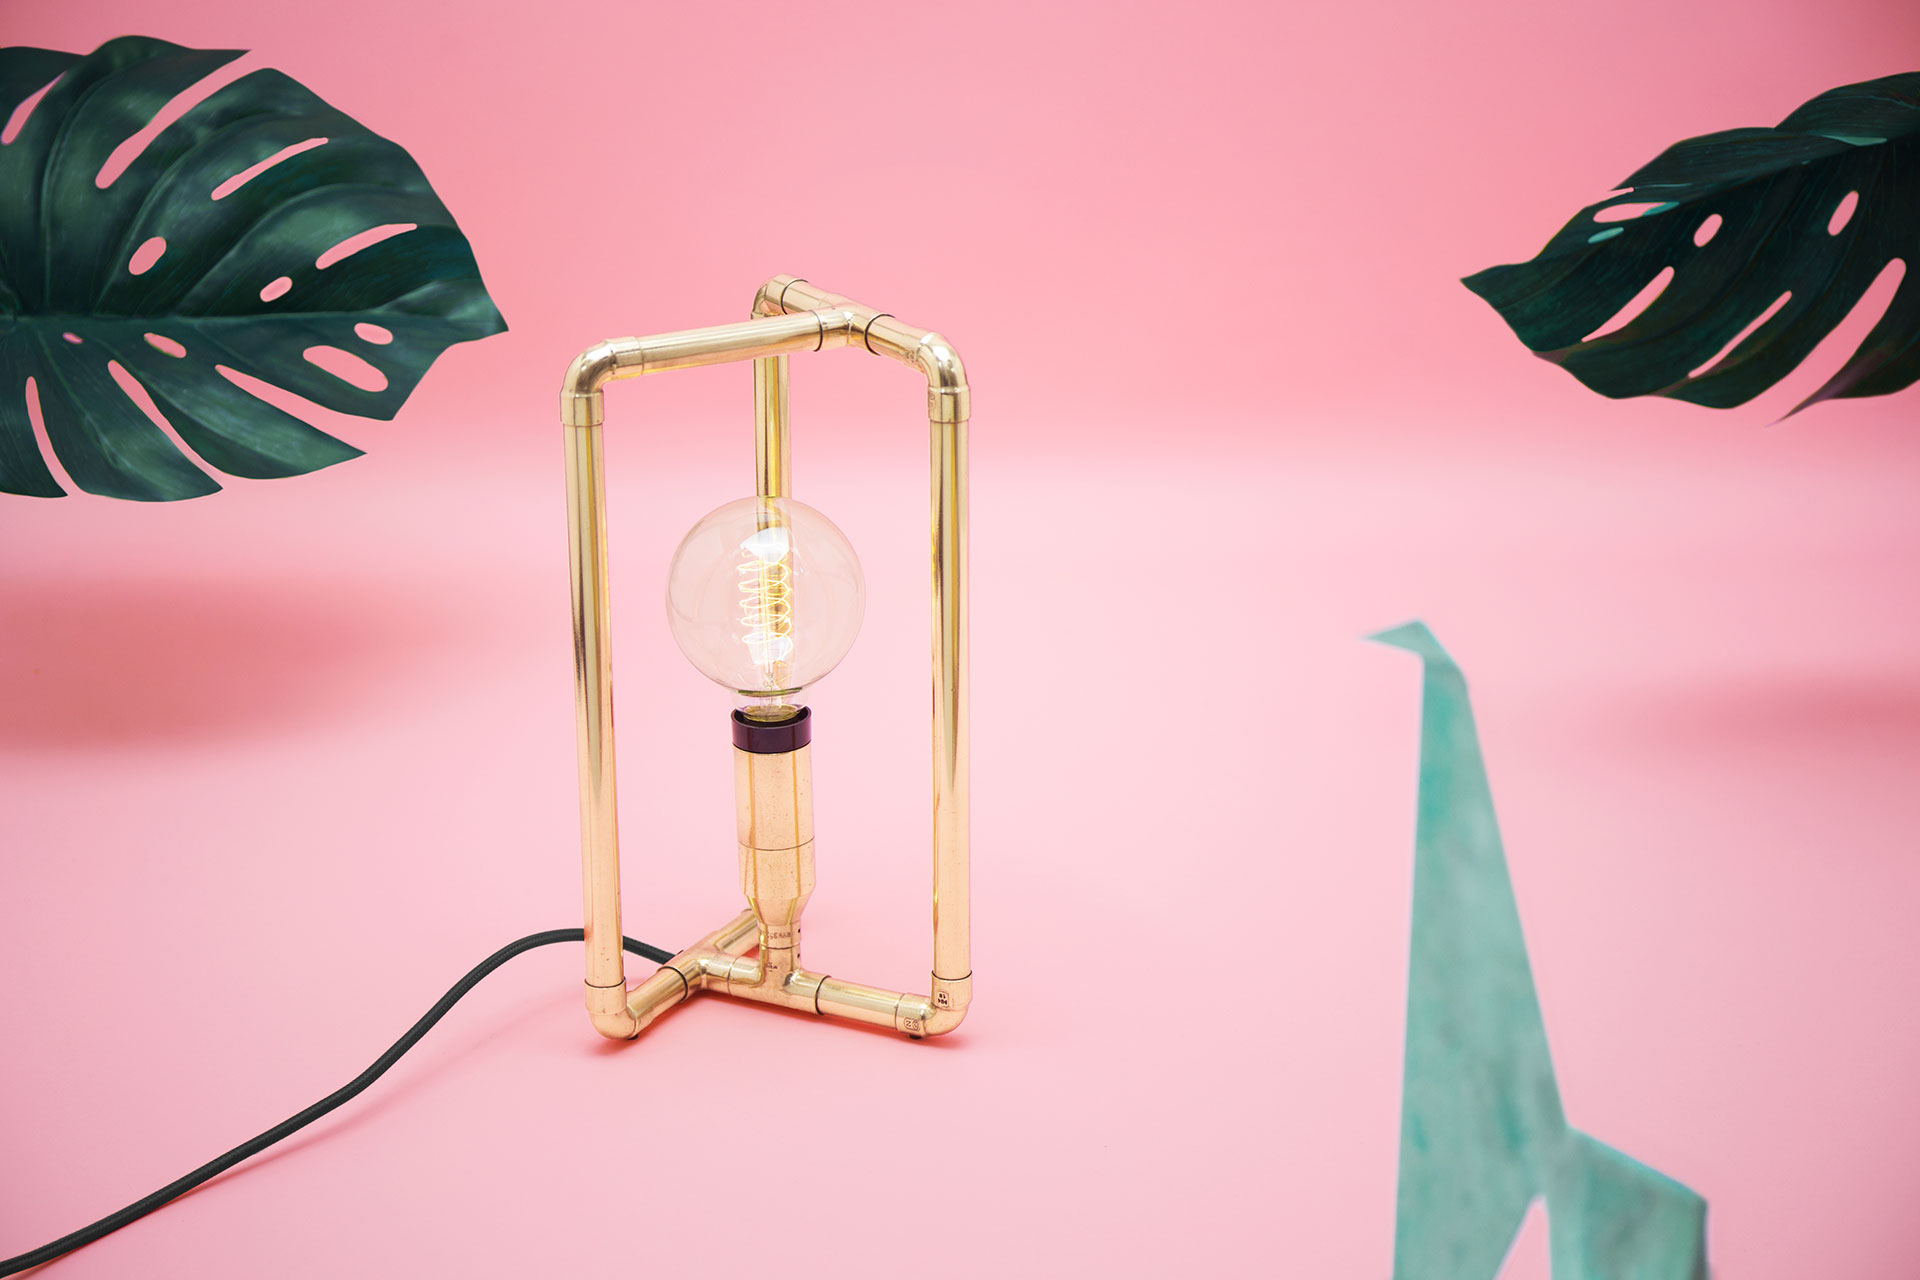 Designer bedside lamp in modern brass with creative touch dimmer and retro bulb in millennial pink apartment